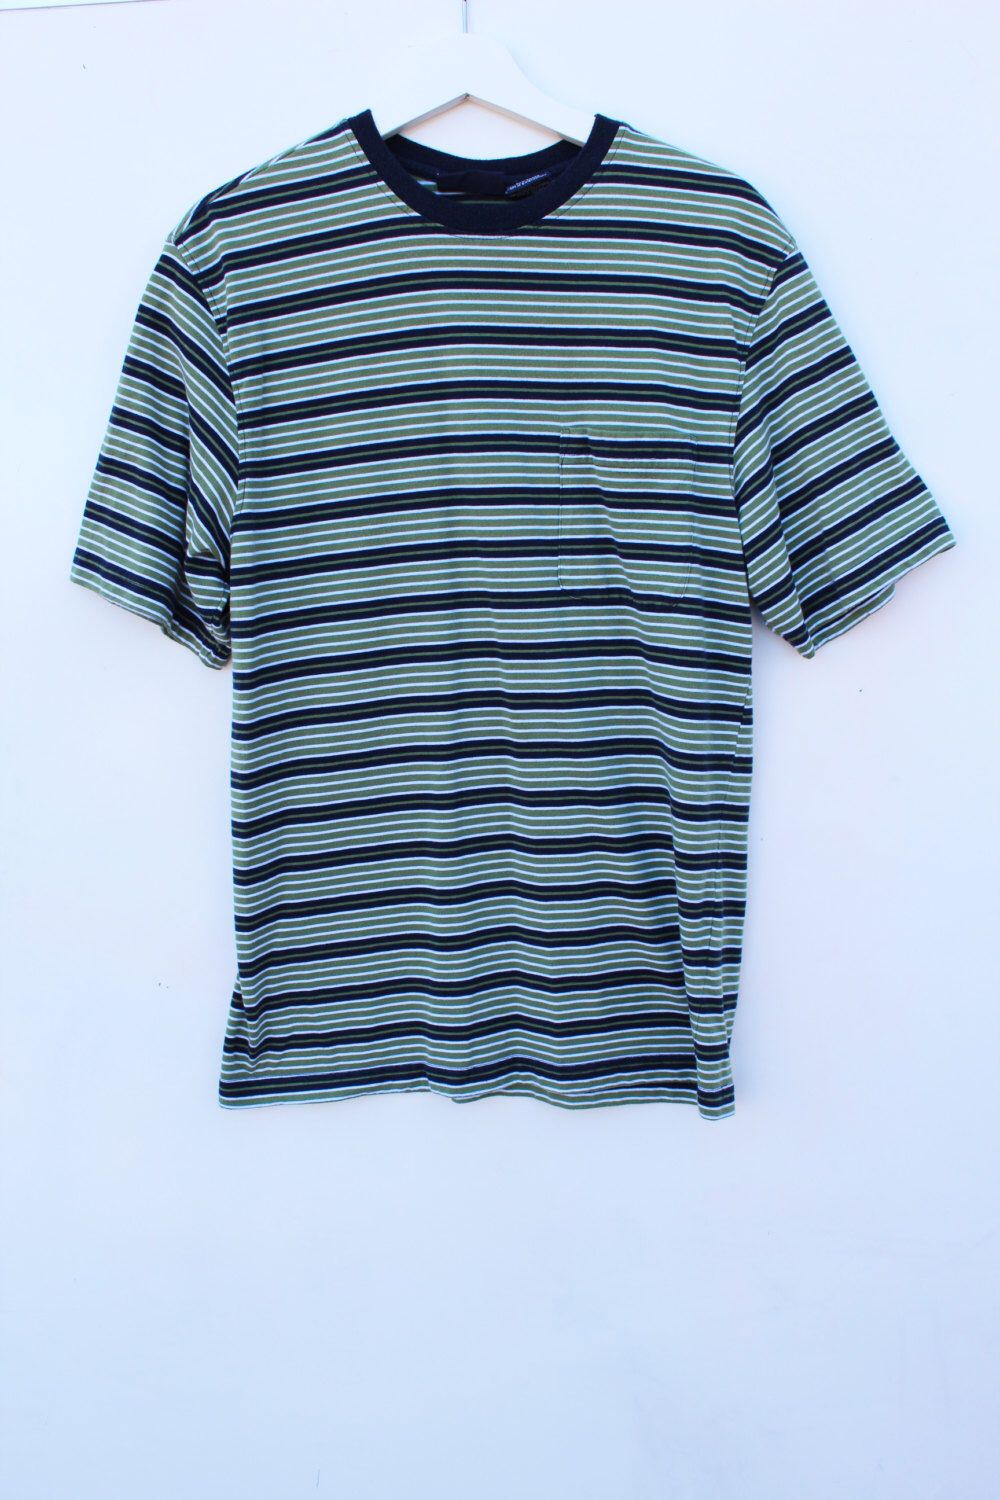 90s Striped T Shirt / Men's MEDIUM Pocket Tee / Green Navy White ...